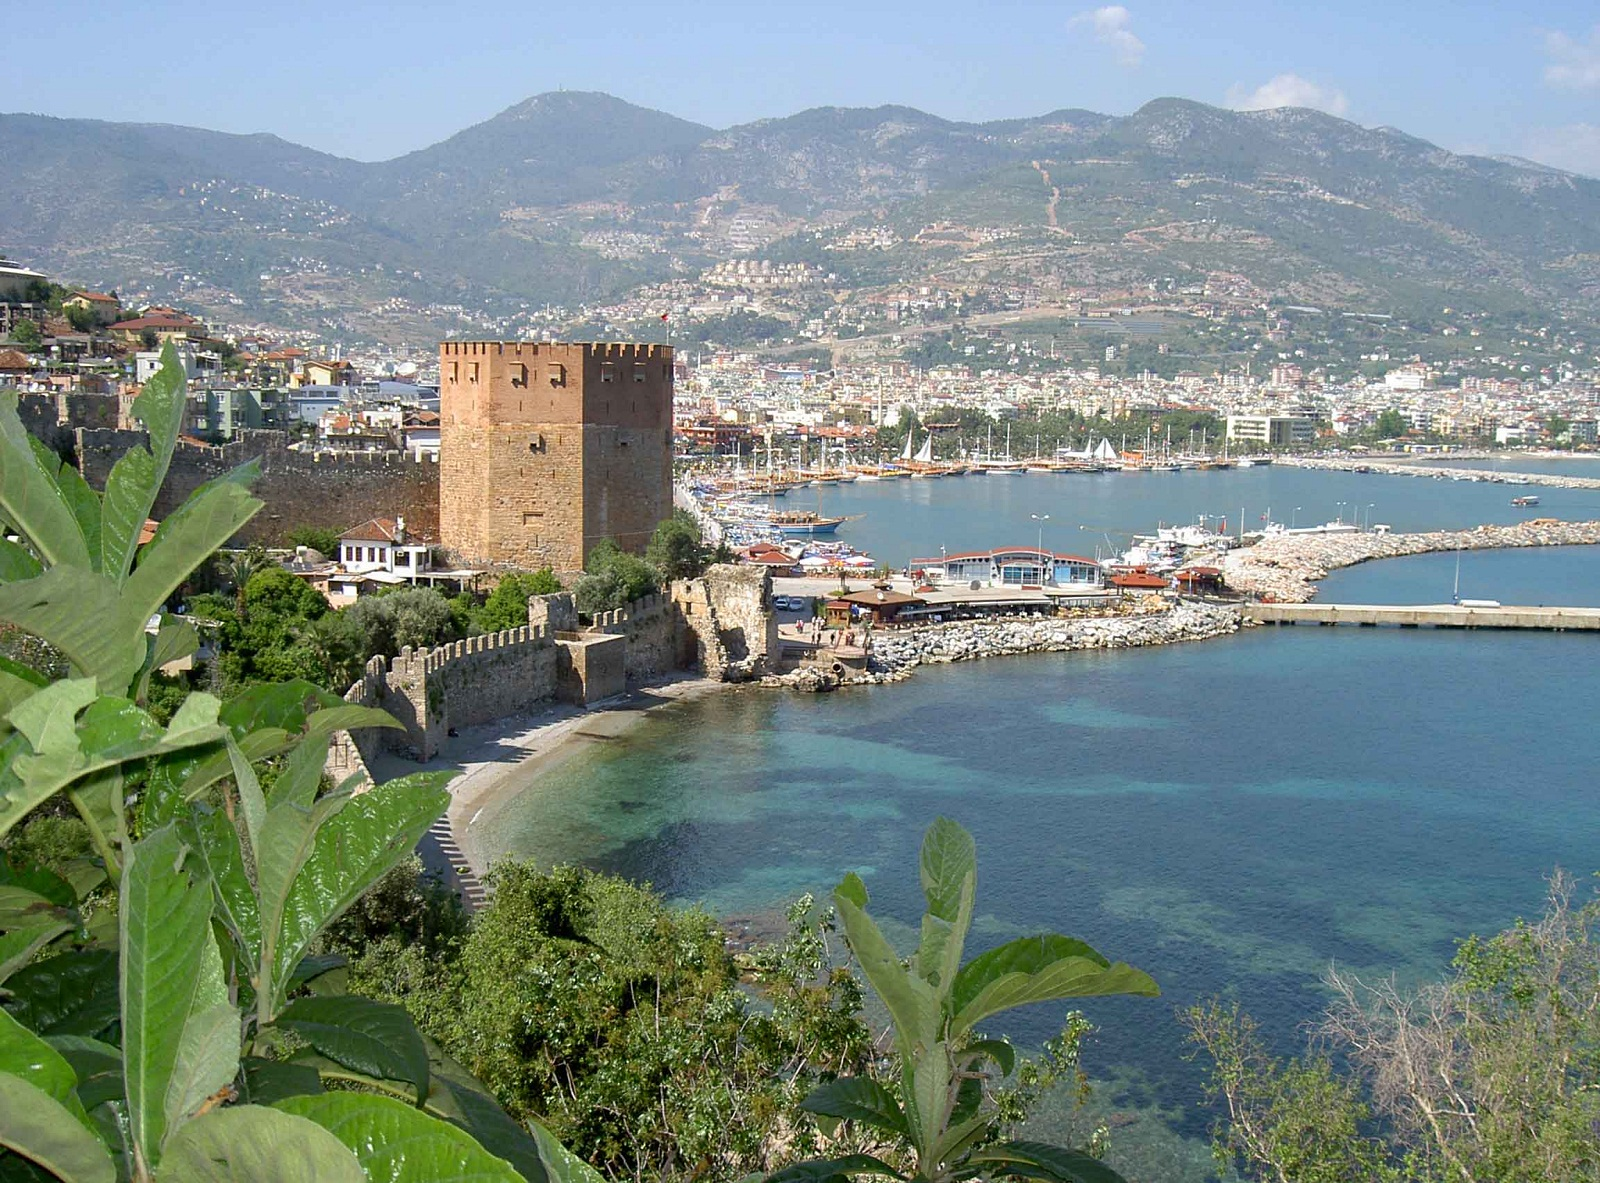 #alanya_turkey on topsy.one